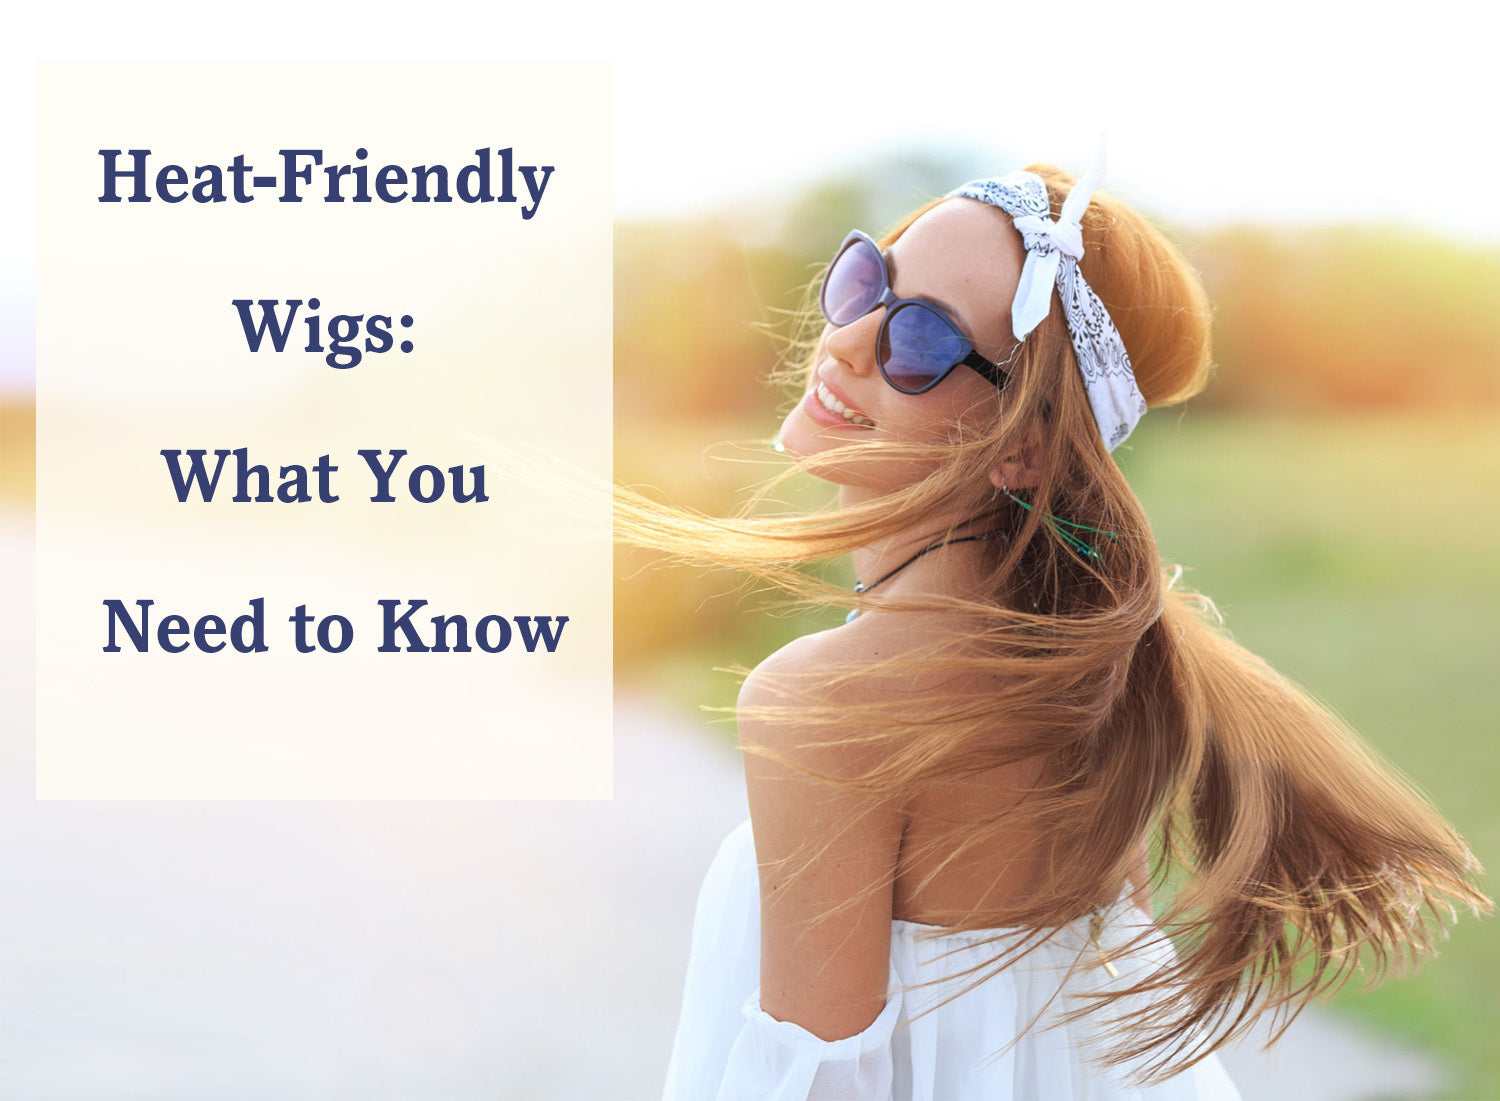 Heat-Friendly Wigs What You Need to Know